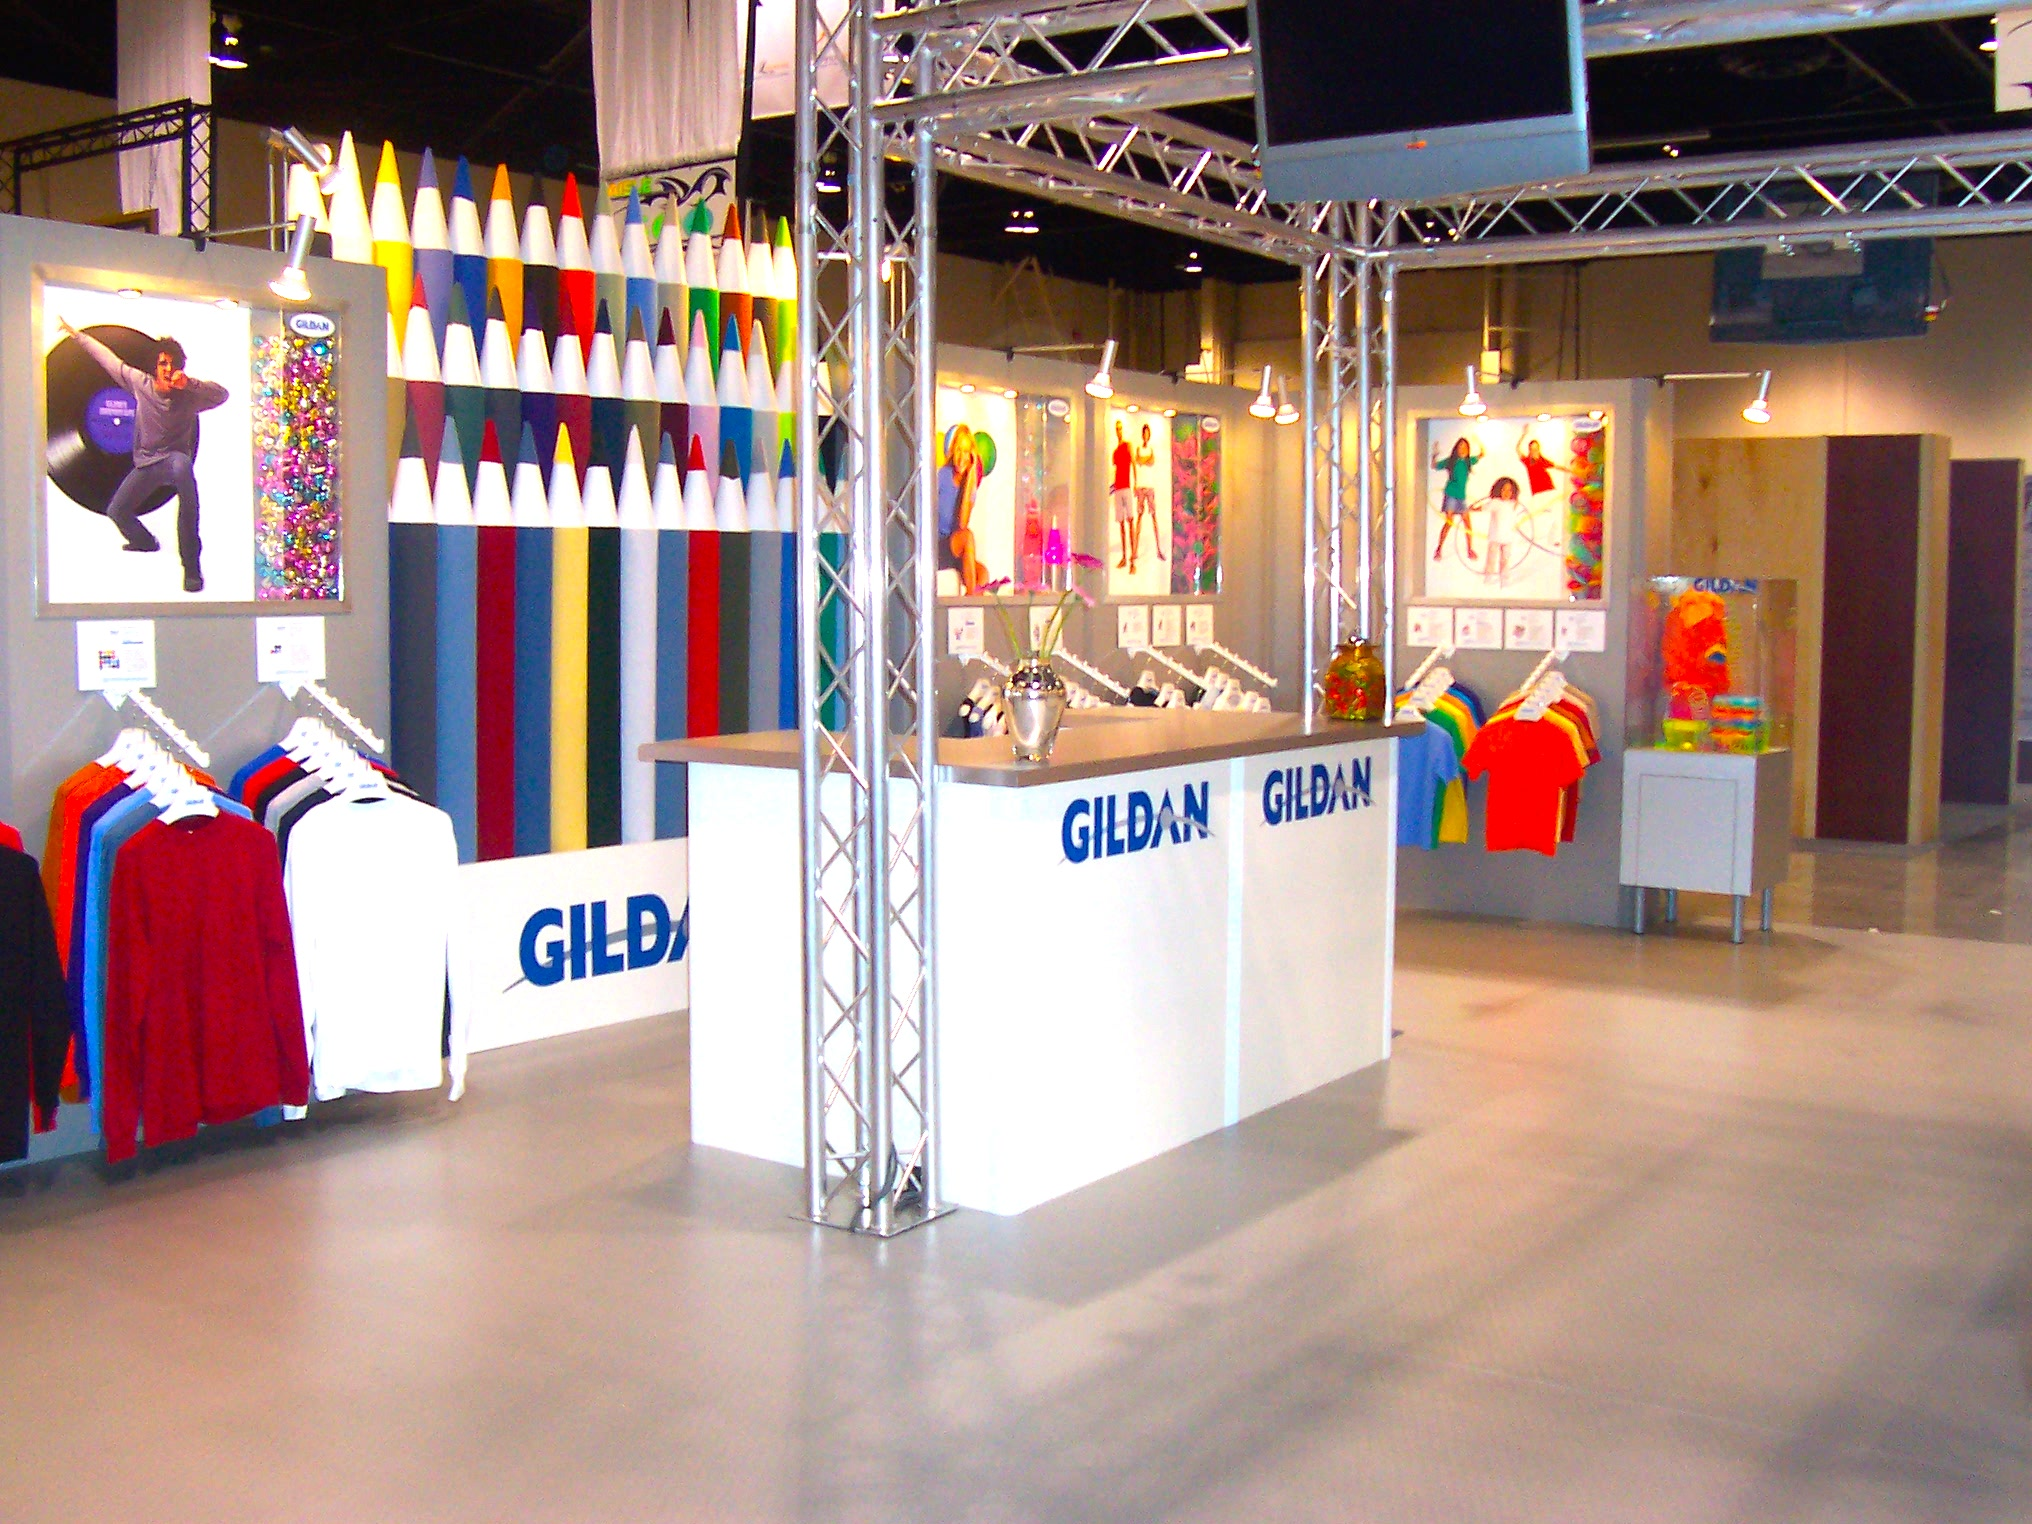 Montreal-based Gildan Activeware is North America's second most productive apparel company, with profit margins of 14.66%. Tradeshow booth photo:www.visualmerchandisinggroup.ca